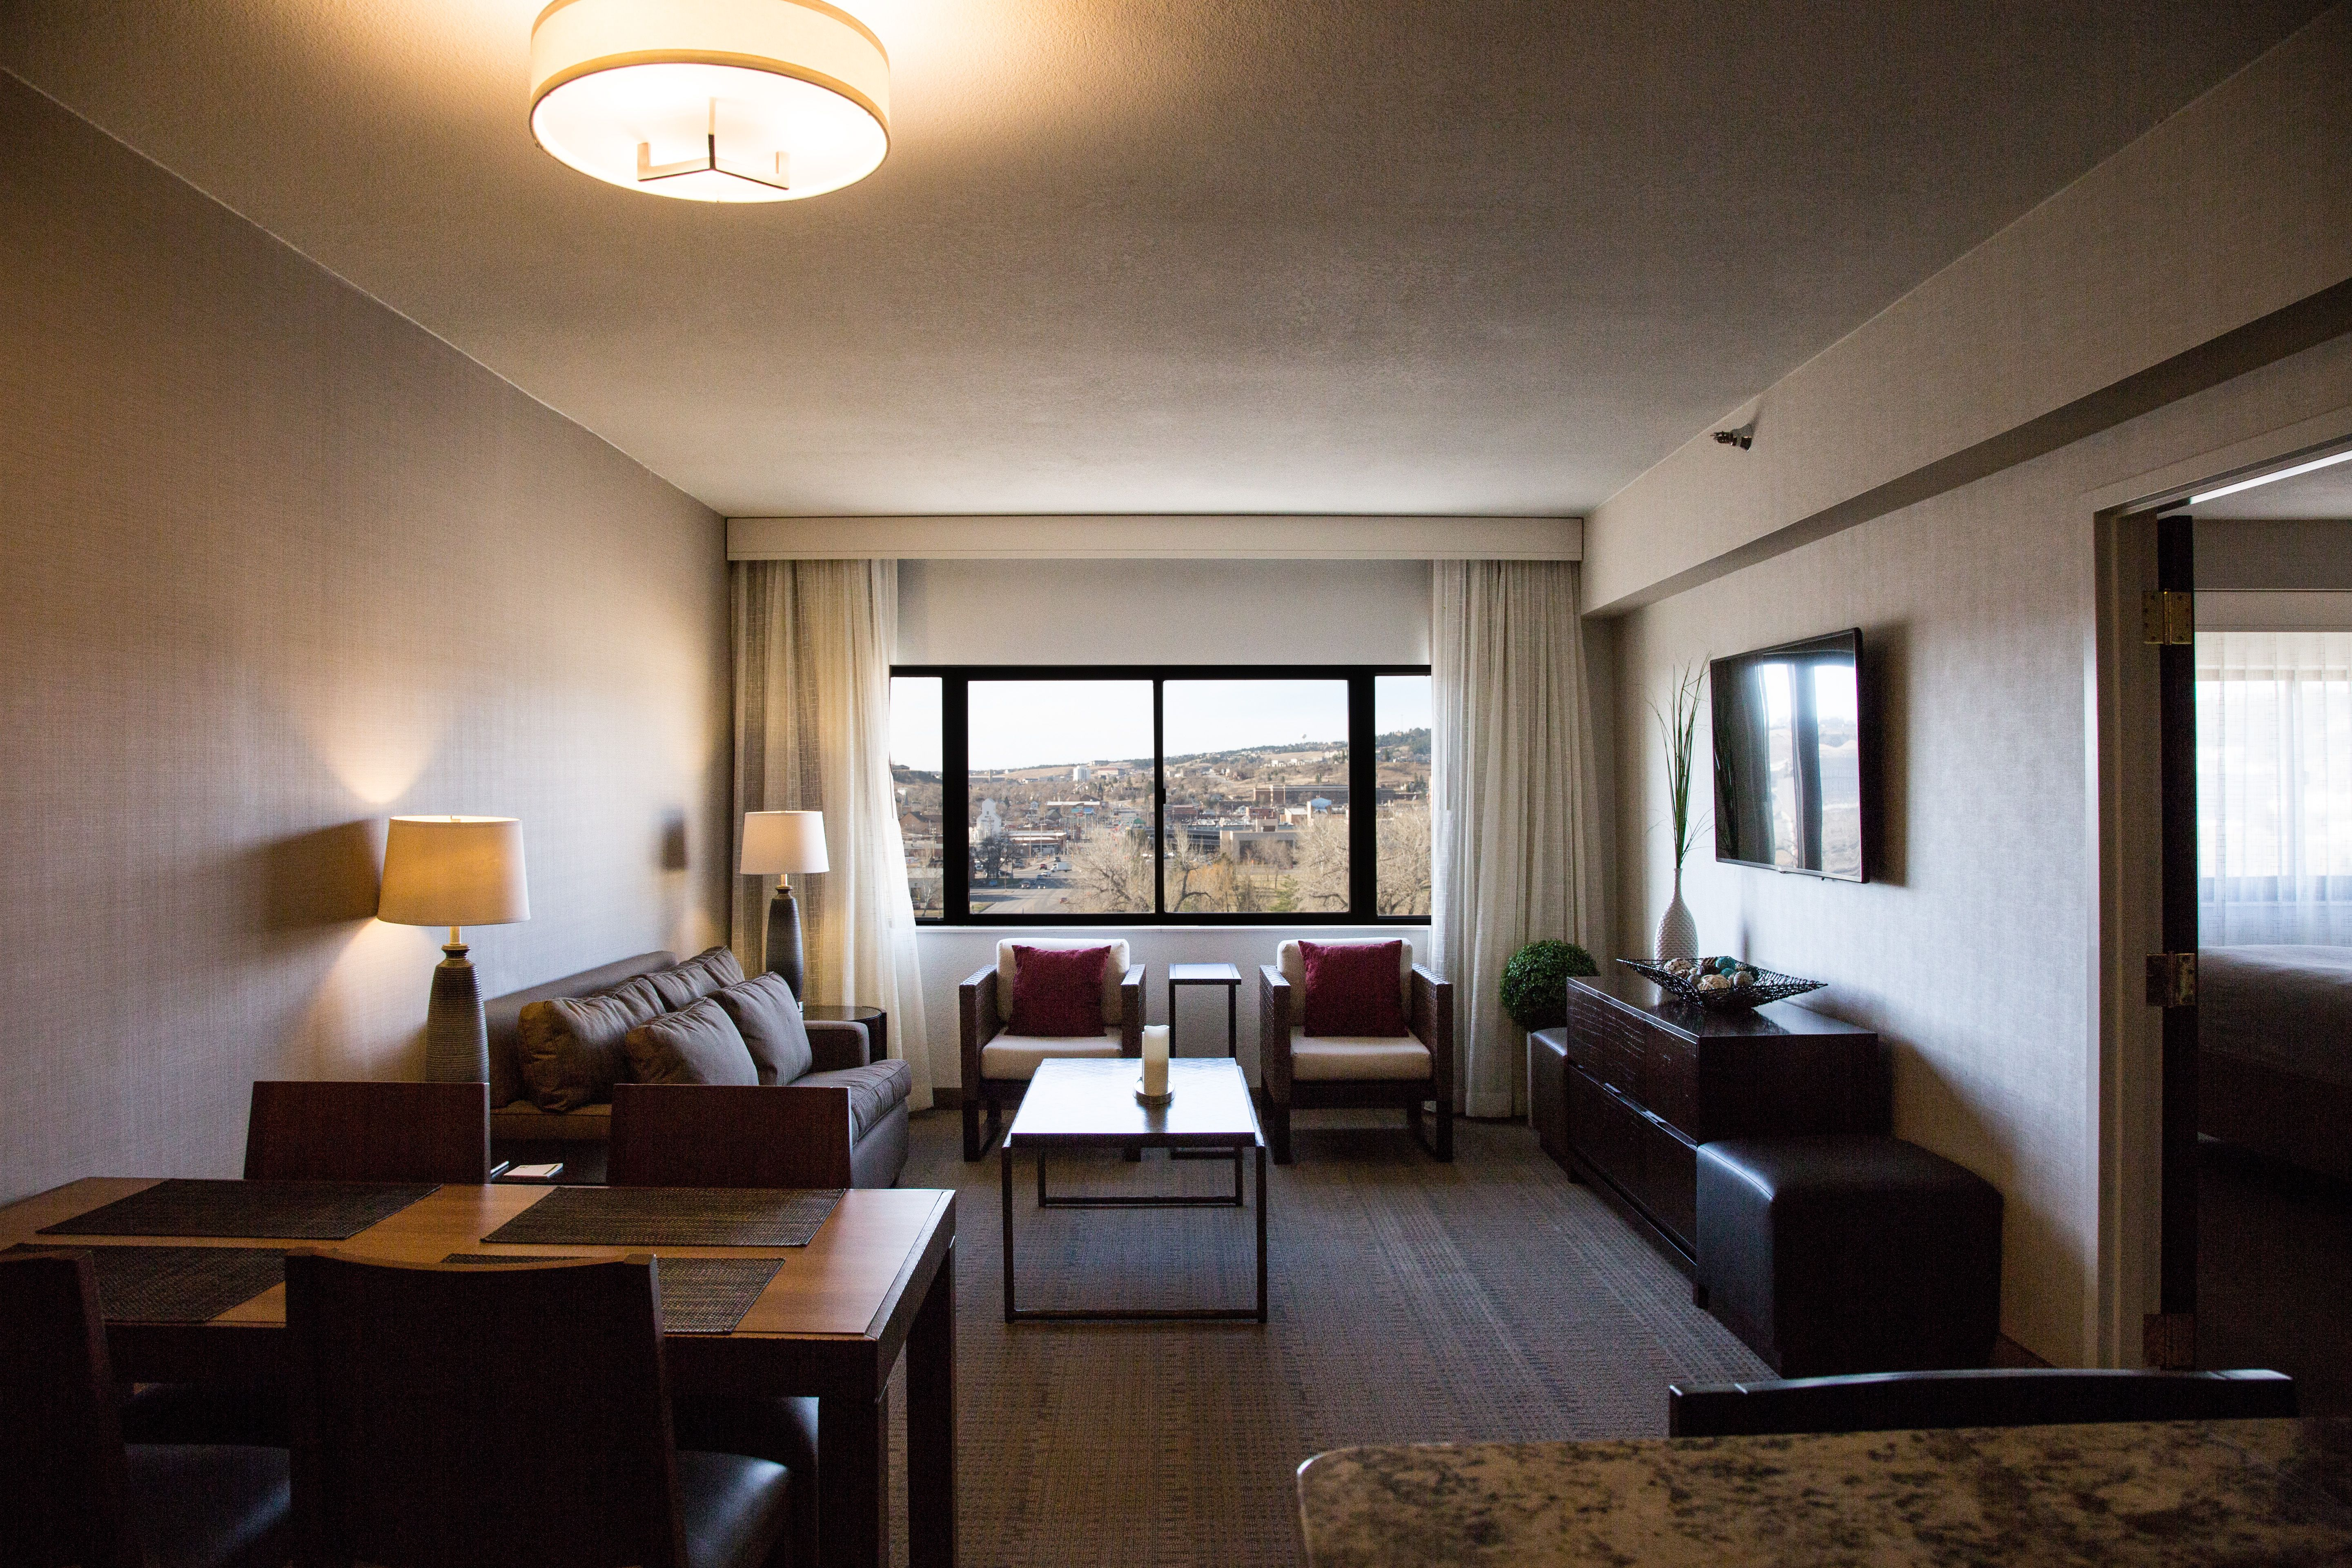 Presidential Suite Photo Claussen Photography Rapid City Hotel Holiday Inn Rapid City Rushmore Plaza Hotel With Images Hotel Amenities